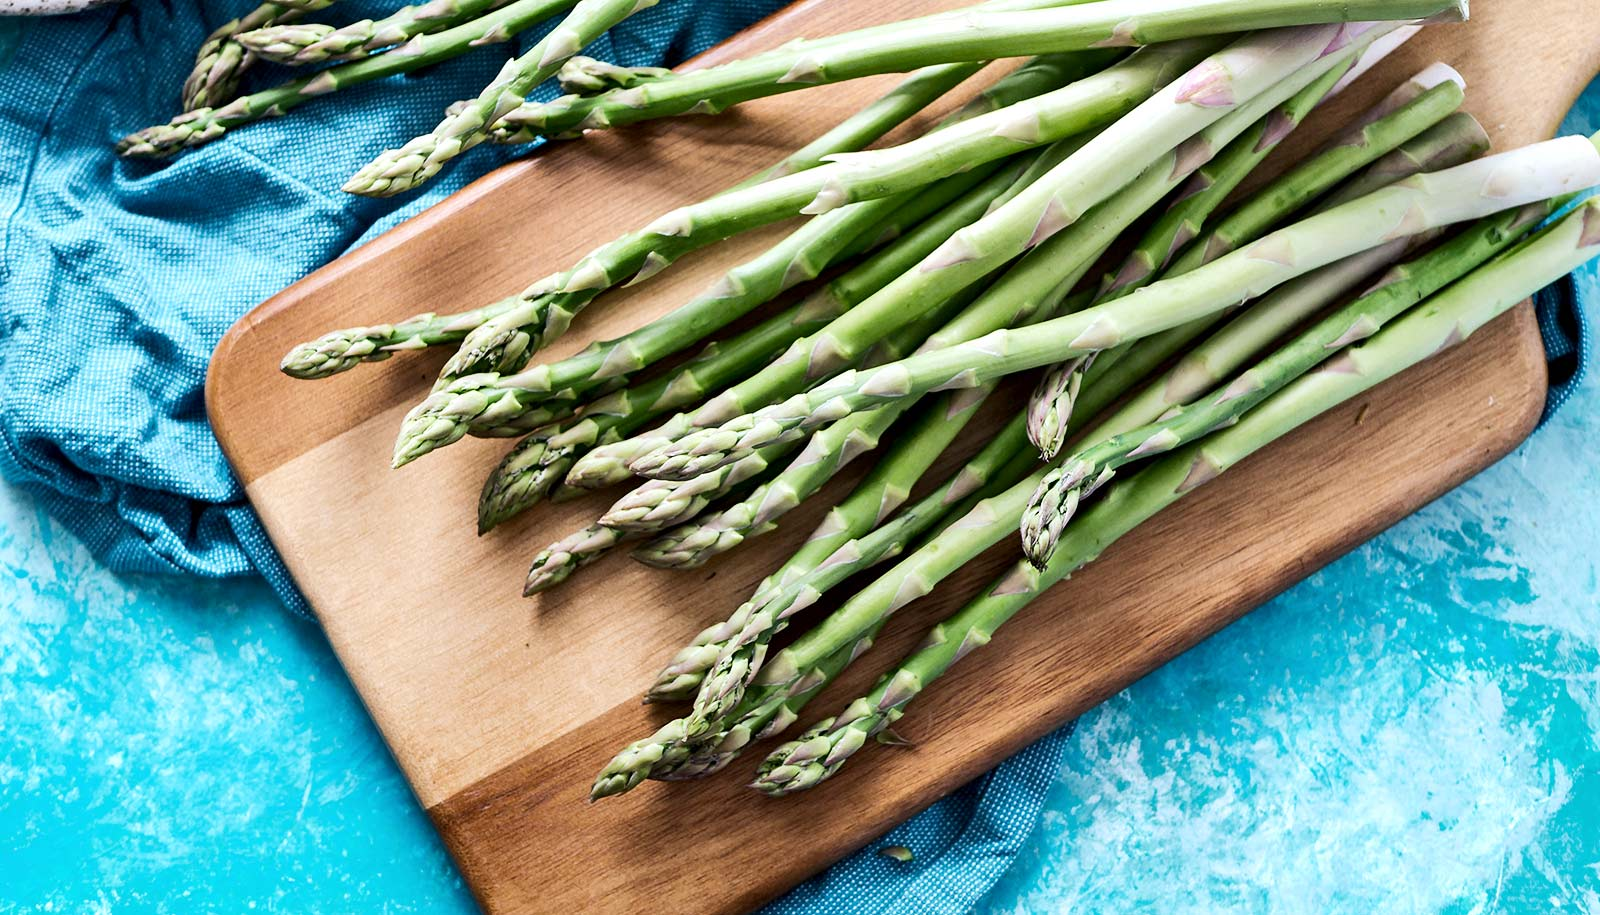 Blocking amino acid found in asparagus stifles breast cancer